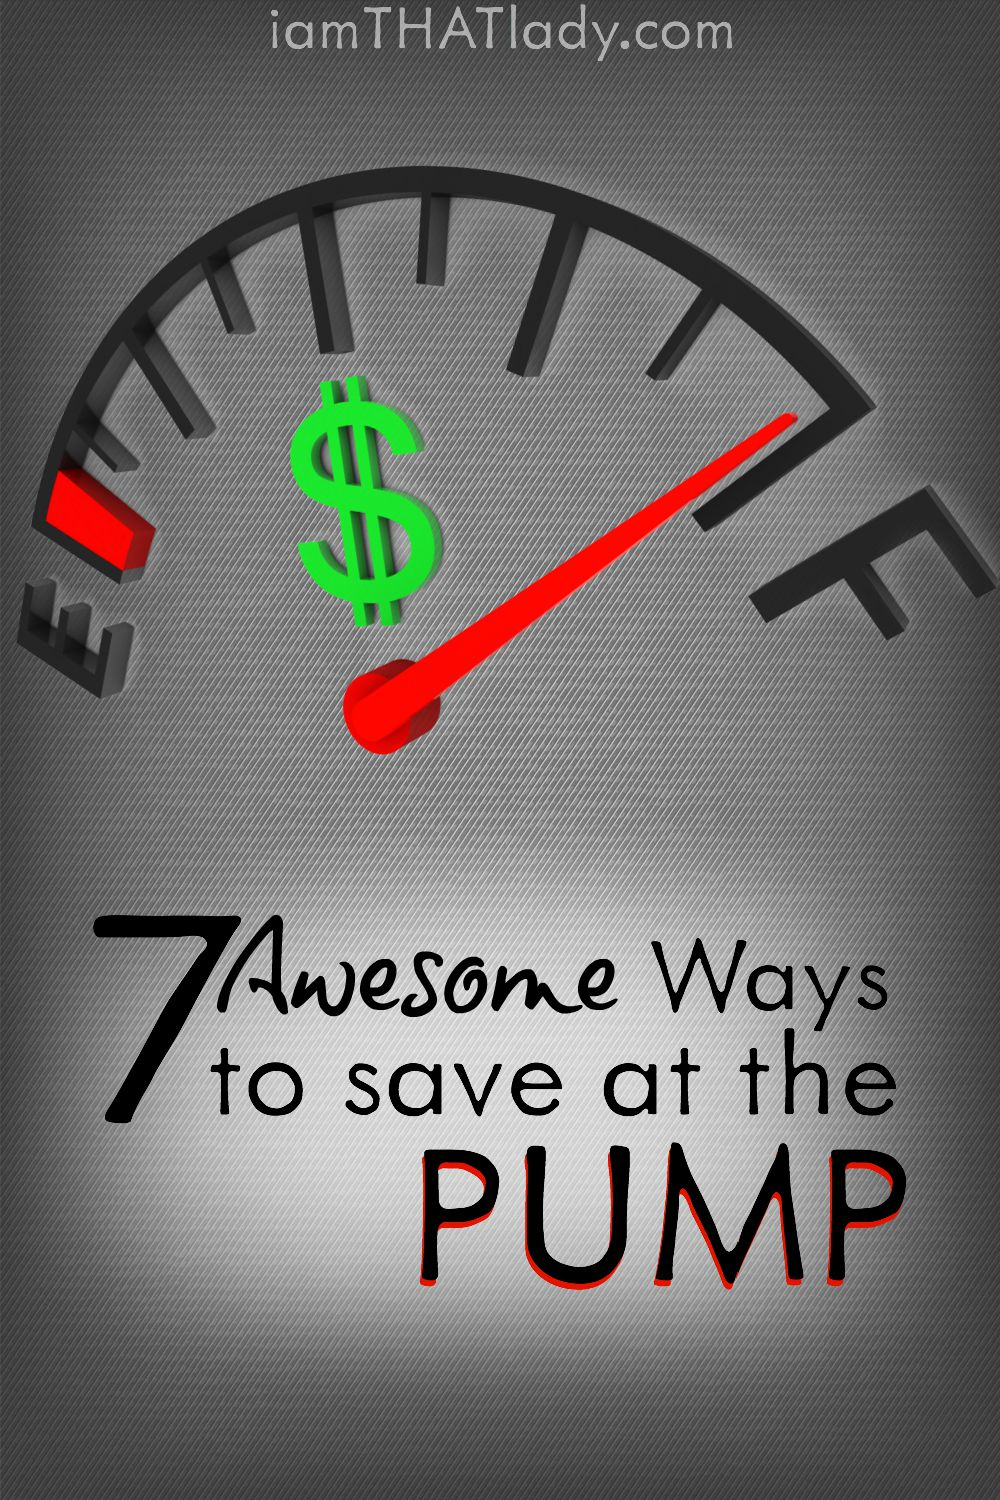 Looking for more ways to save on gas Check out these 7 Awesome ways to save at the pump!